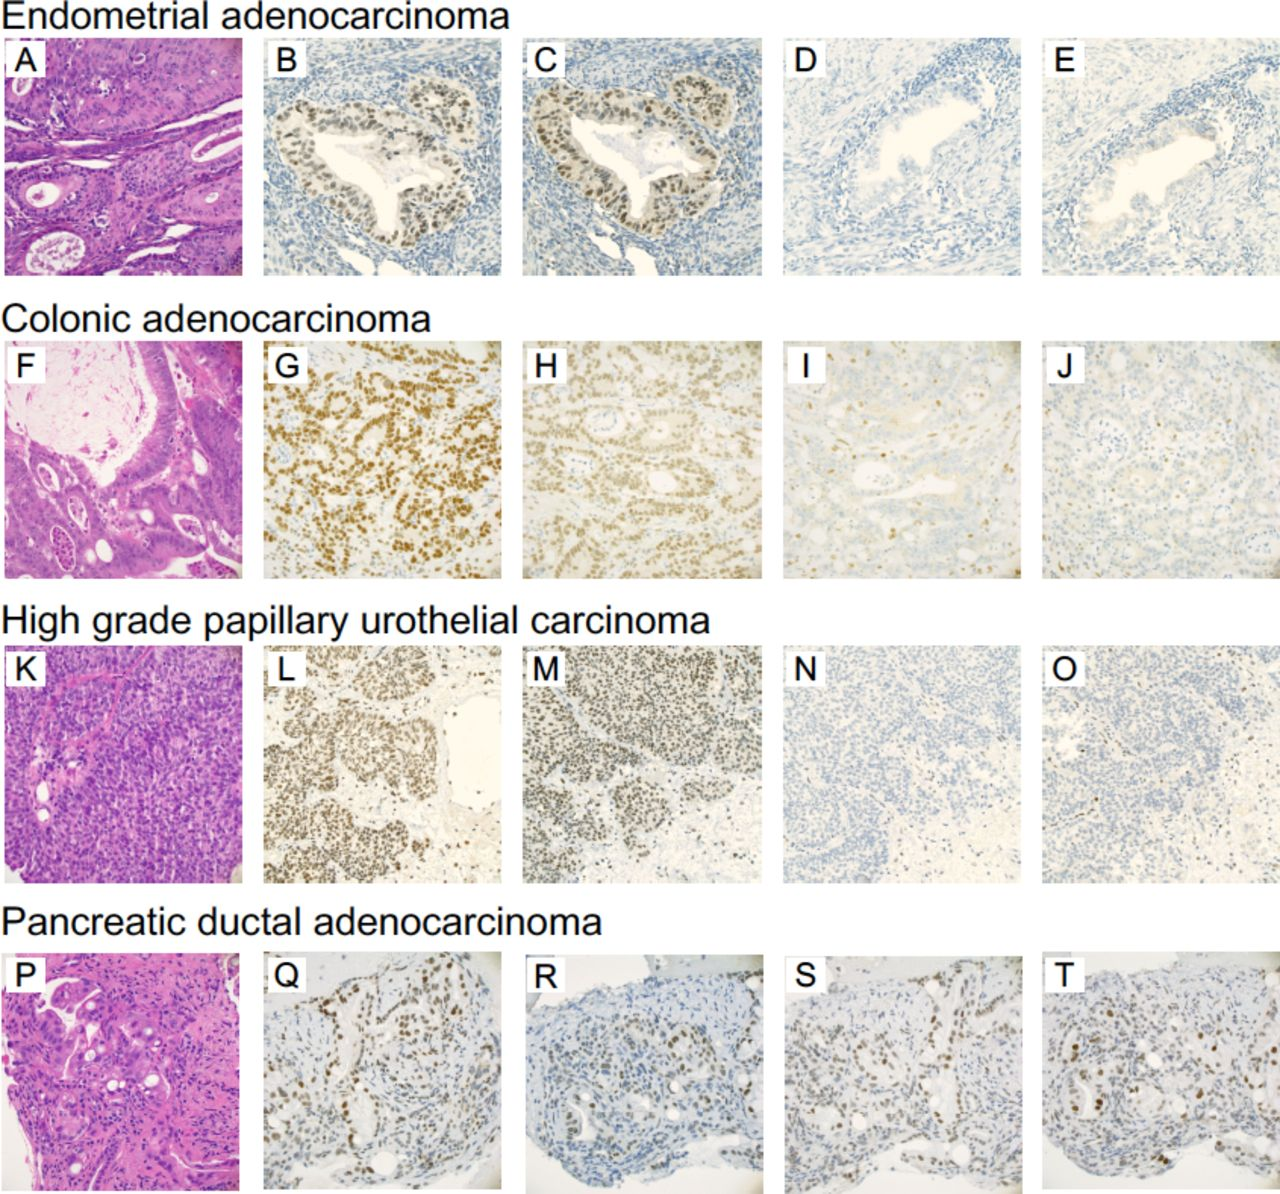 Pancreatic cancer 'mismatch' in Lynch syndrome | BMJ Open